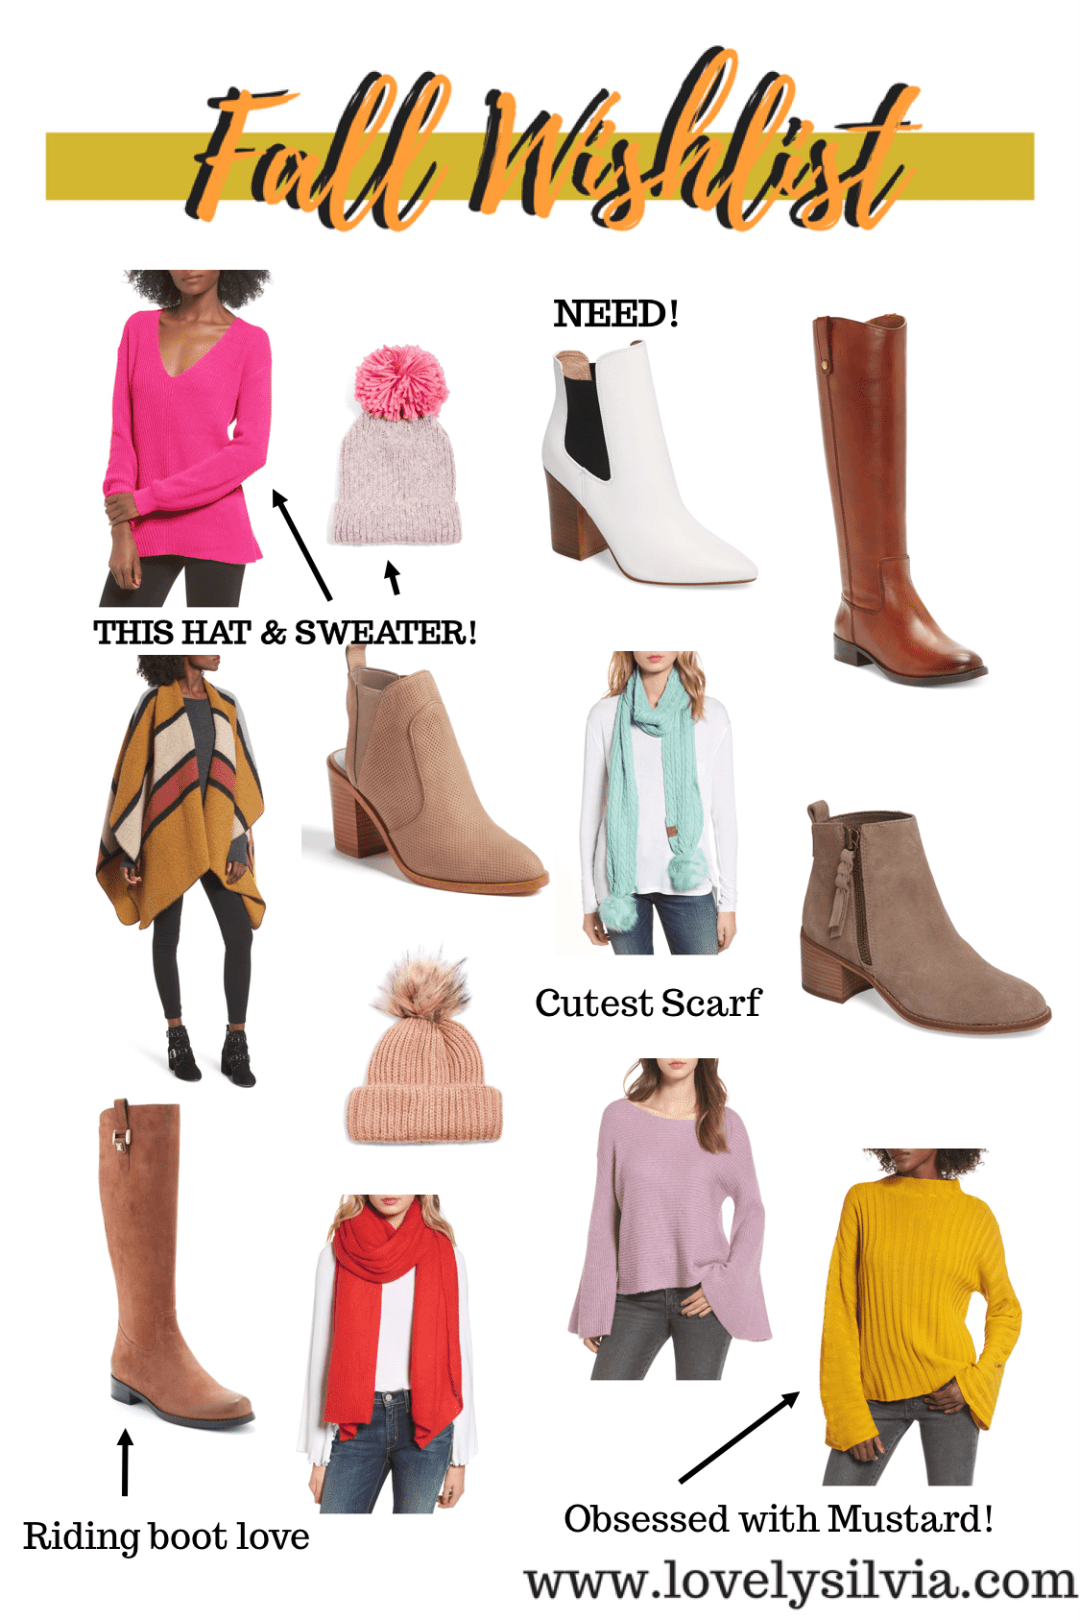 fall wishlist, fall fashion, shop fall finds, fall boots, fall sweaters, fall accessories, pom pom beanie, riding boots, booties,